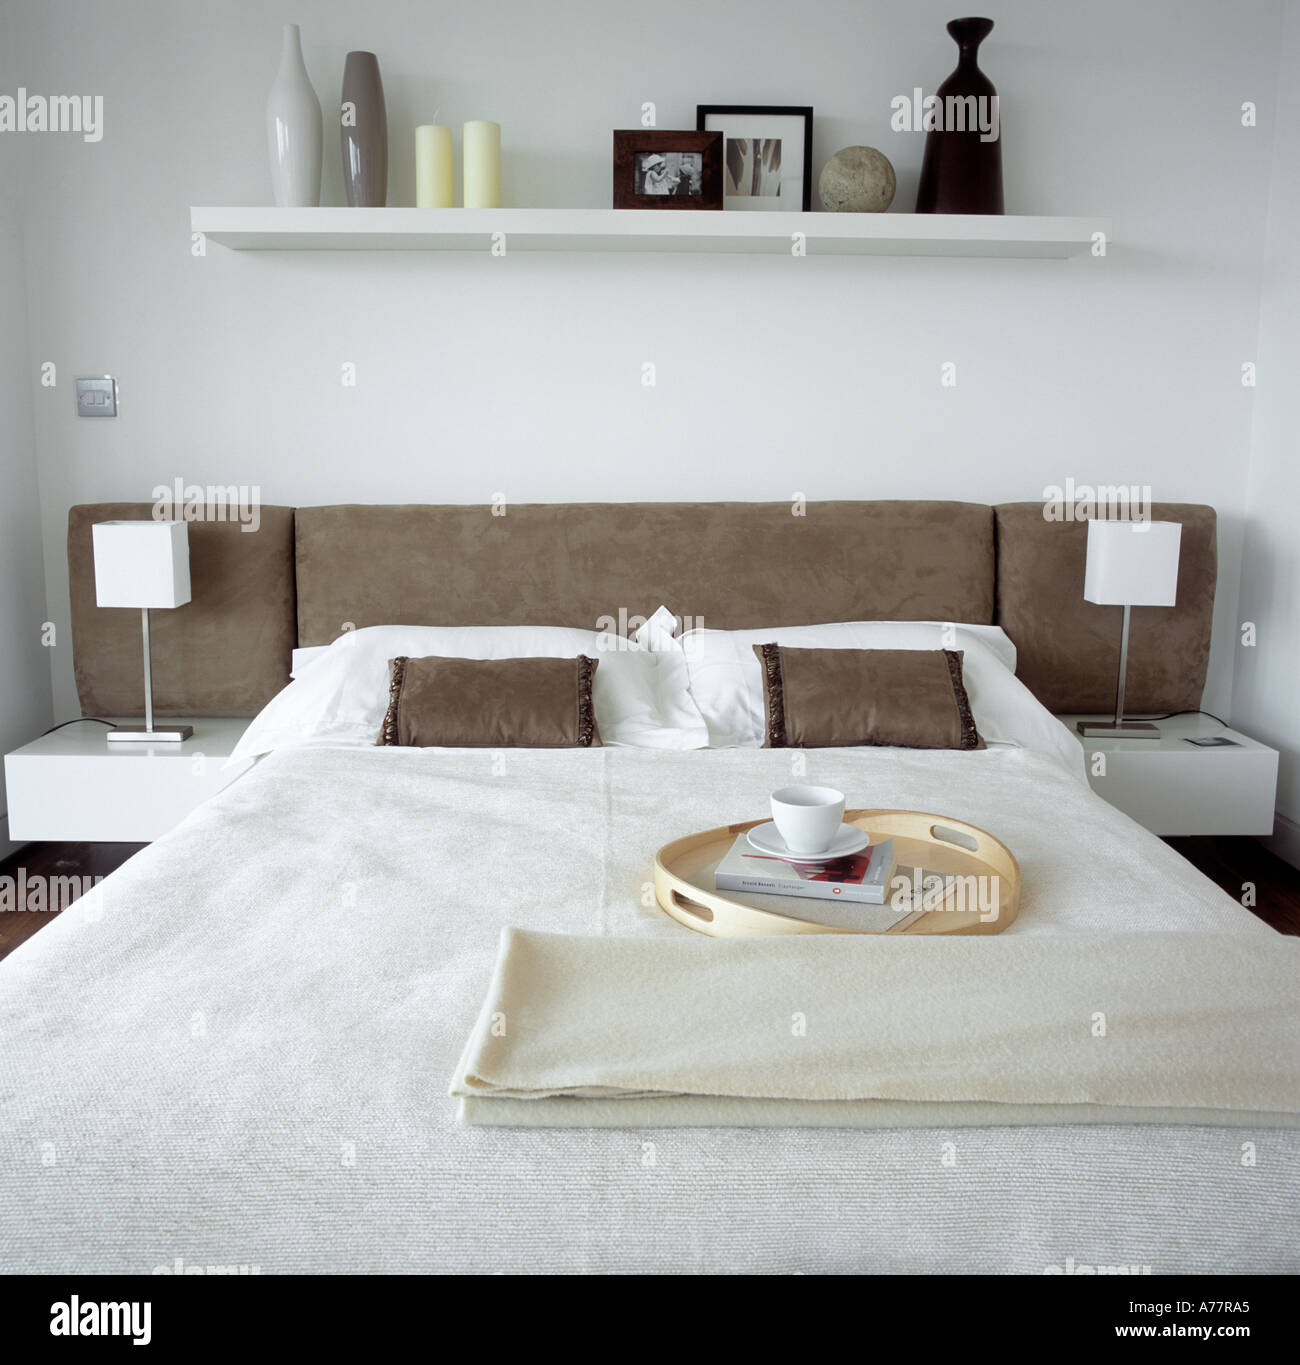 Contemporary bed with cream cover and shelf above bed